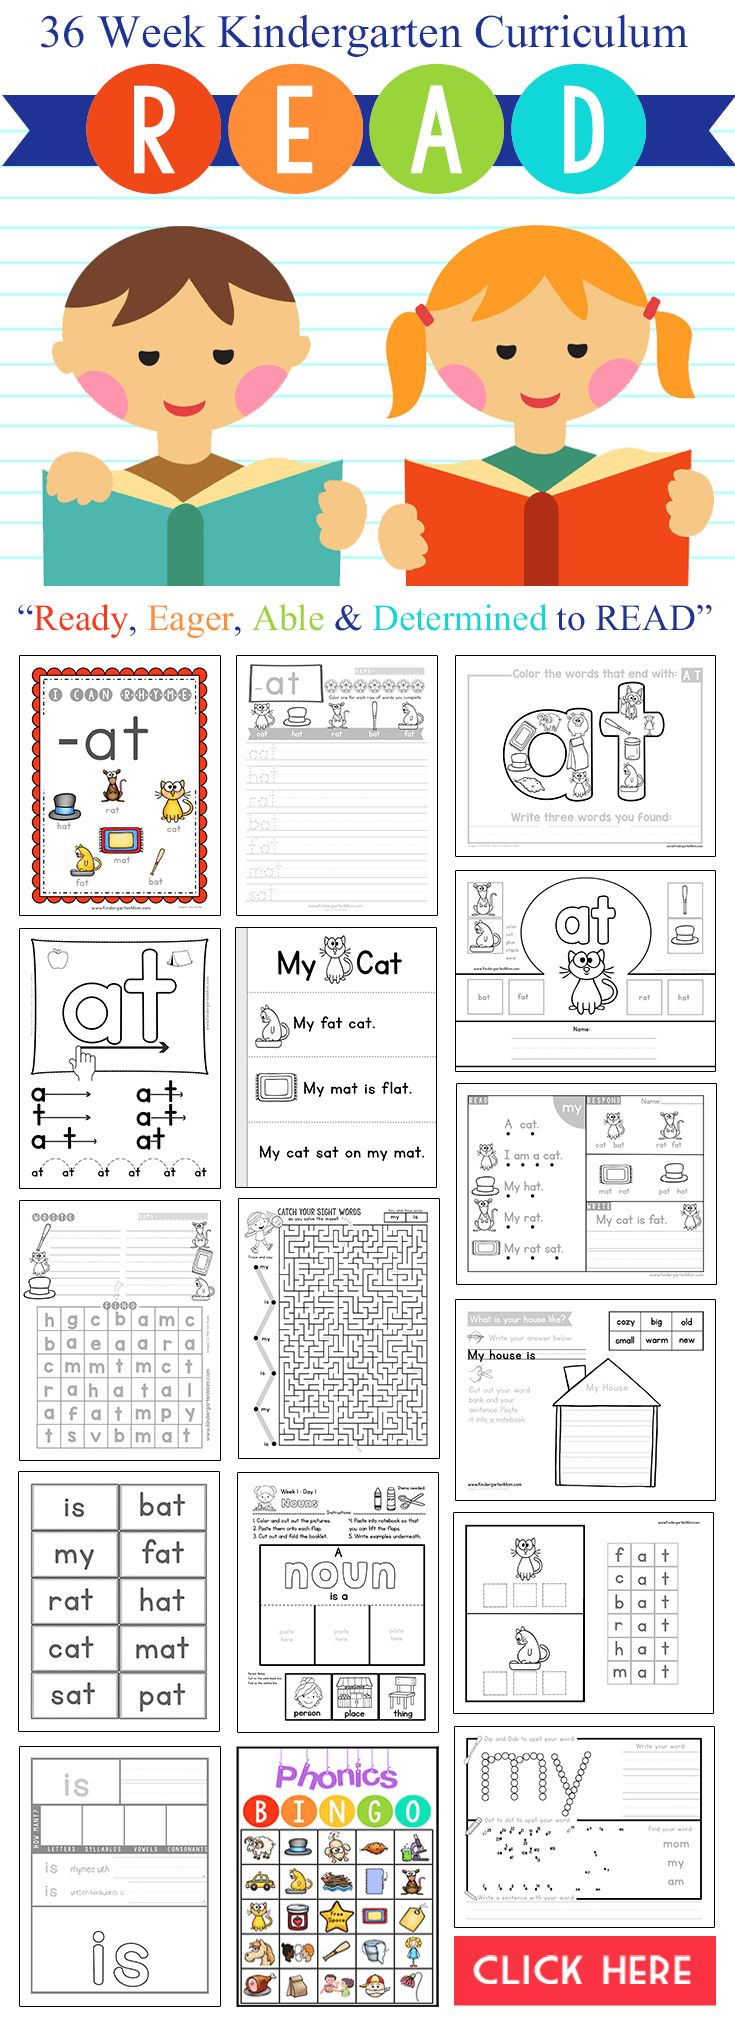 671 Best Homeschool Language Arts And Literature Images On Pinterest